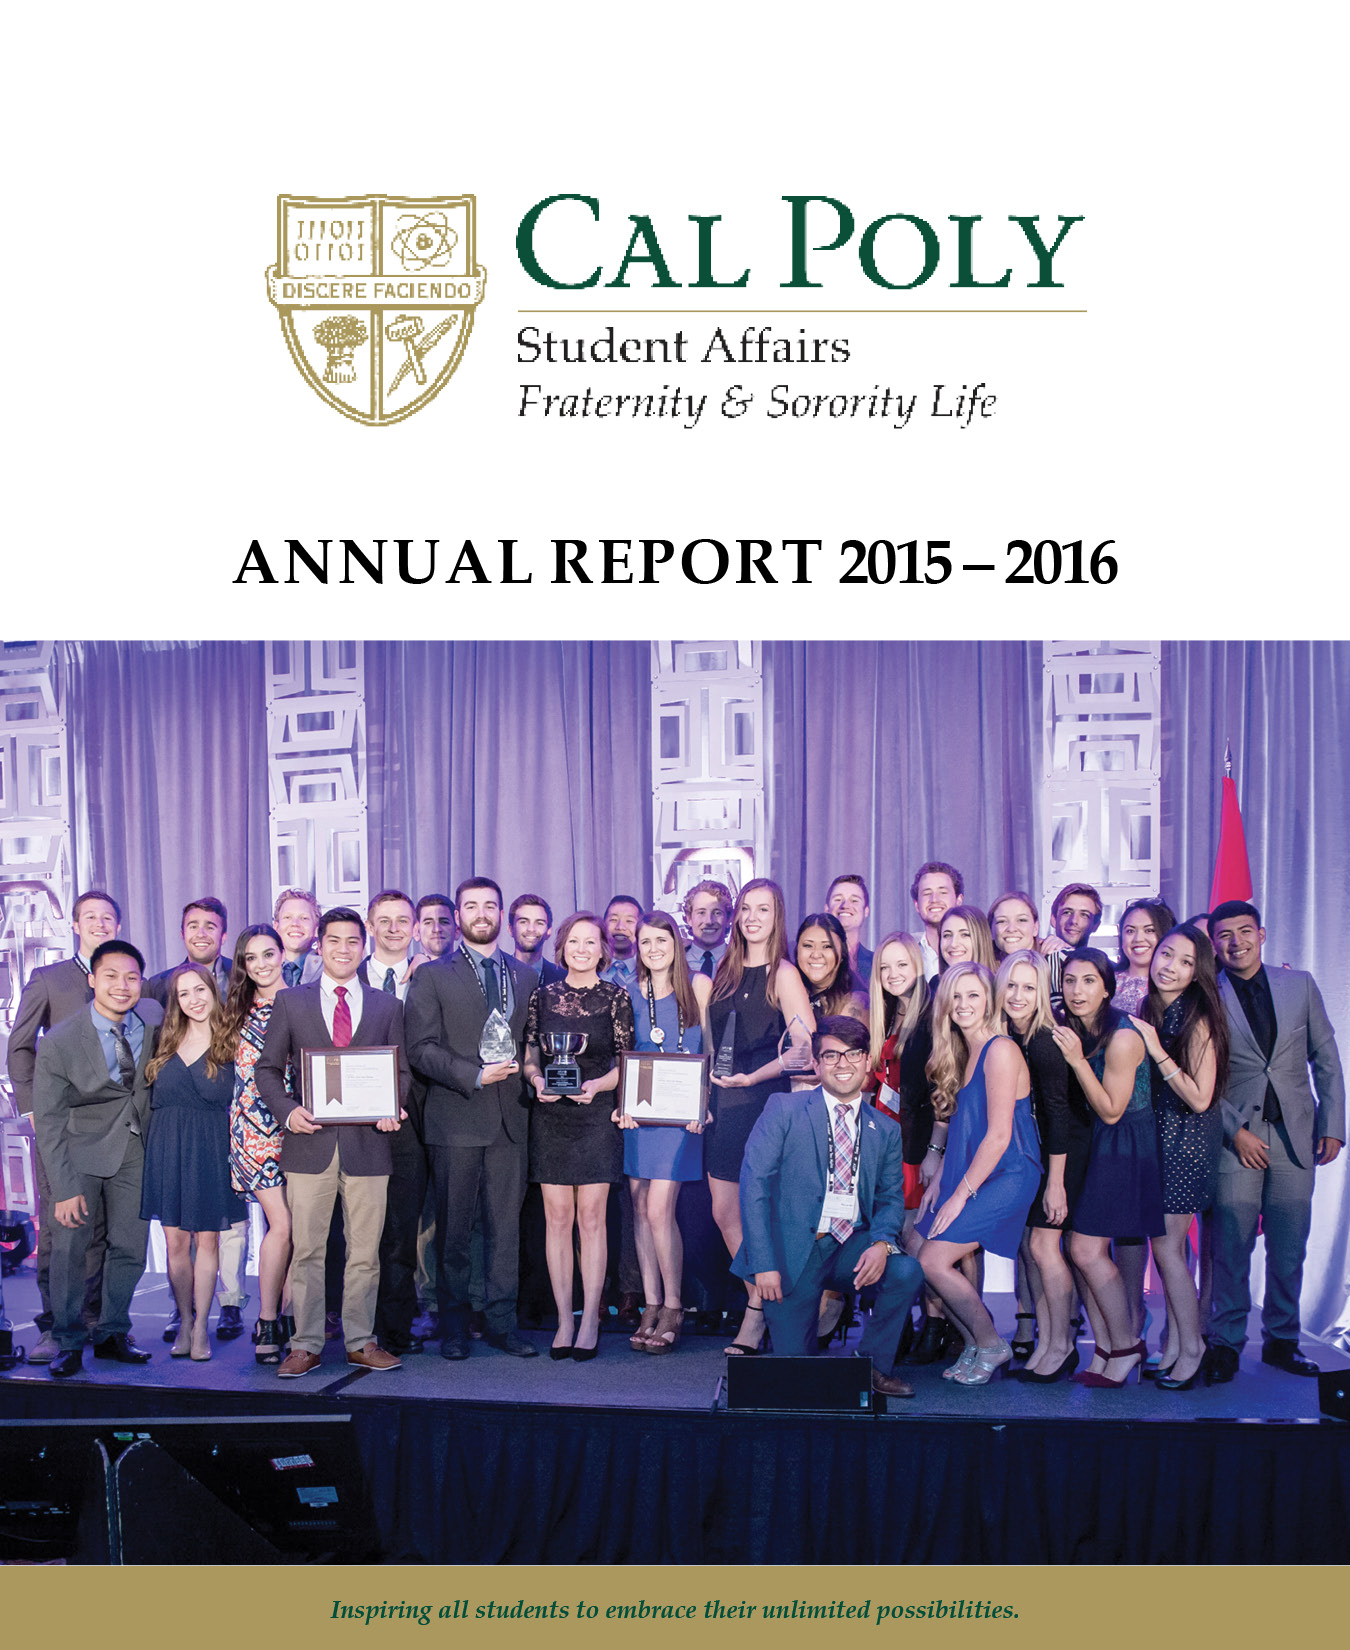 Student Affairs Annual Reports